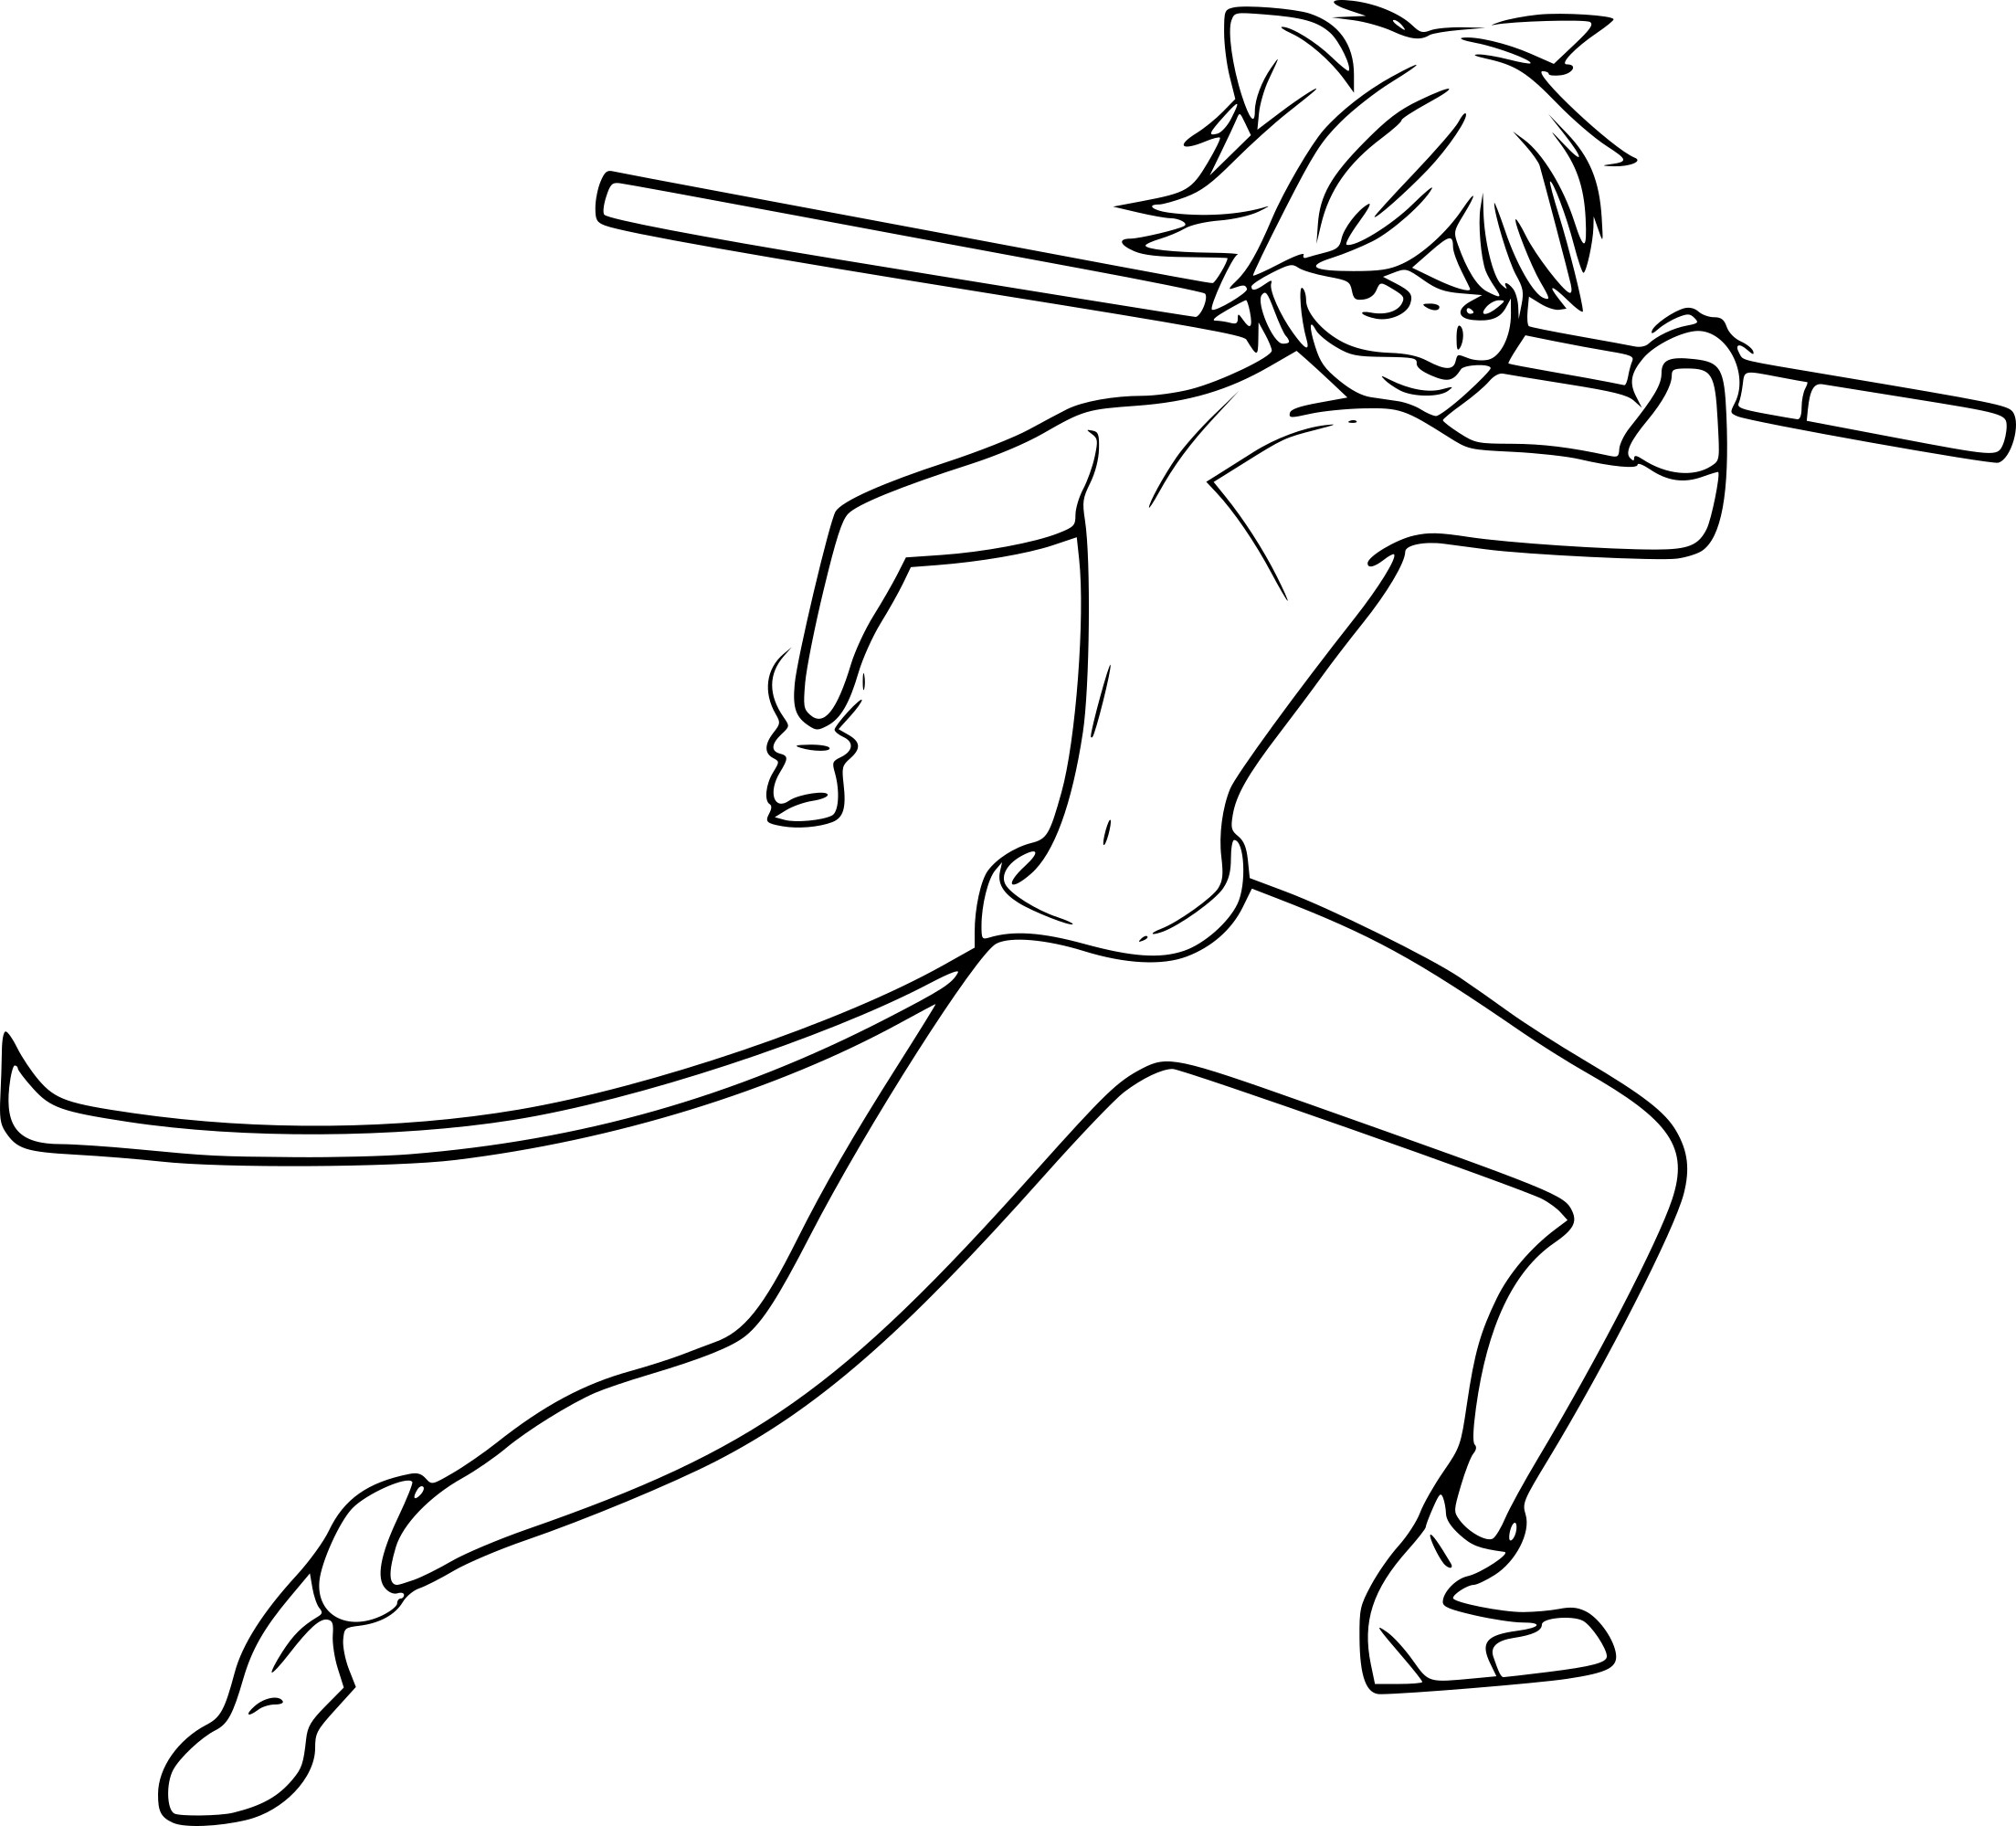 Miraculous Ladybug coloring pages - YouLoveIt.com